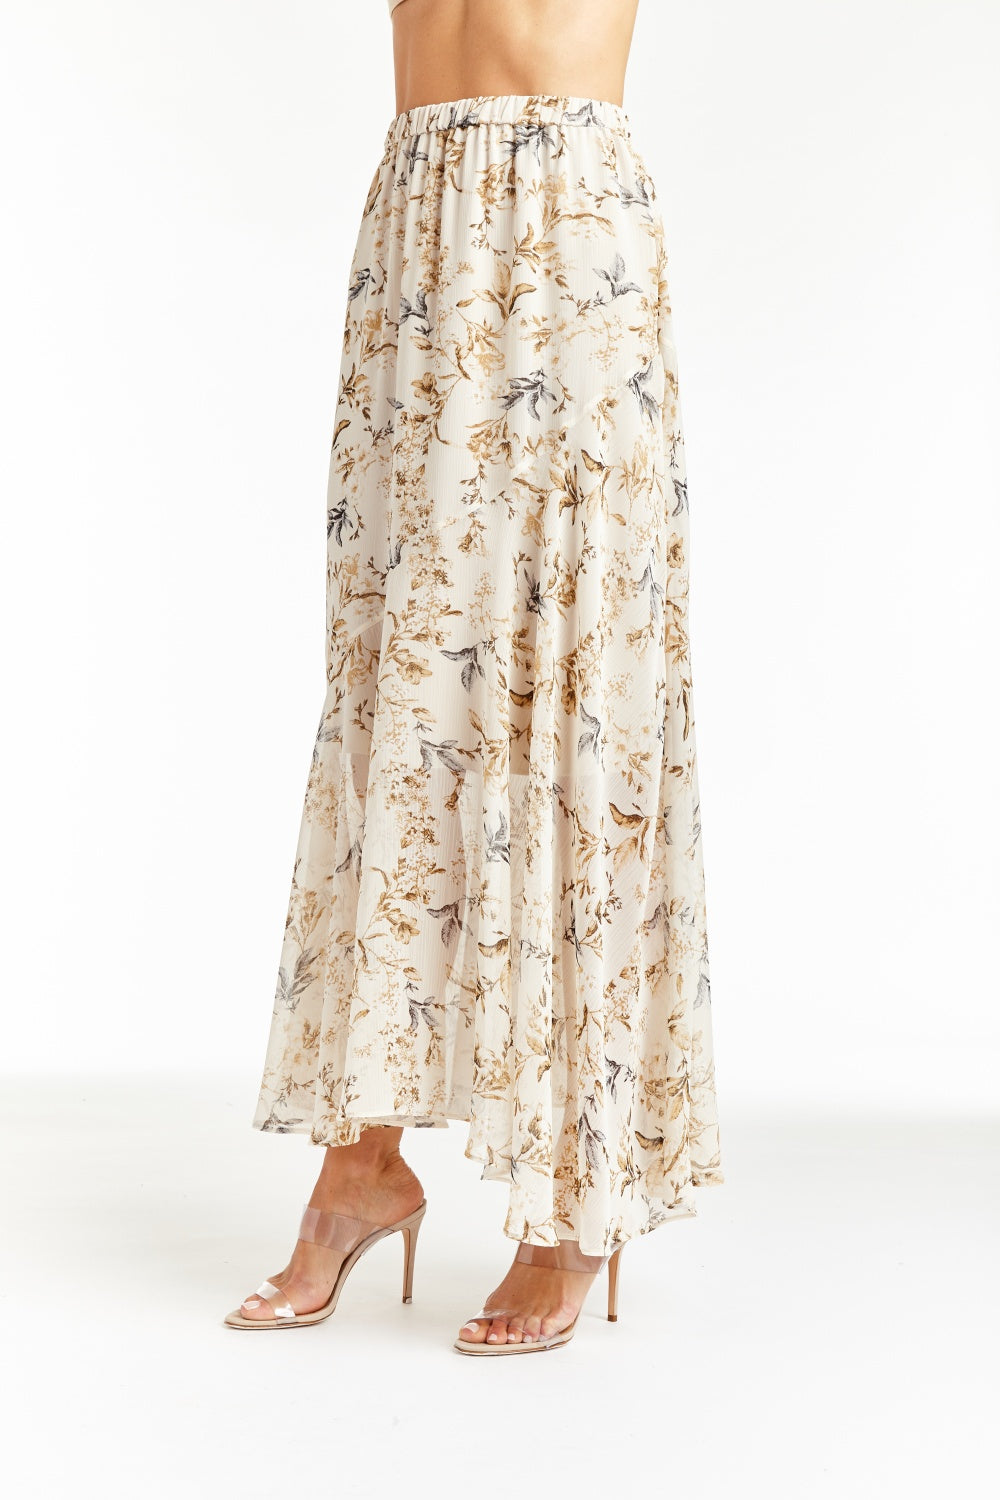 Joslyn Maxi Skirt - Mulberry & Me Chicago Boutique